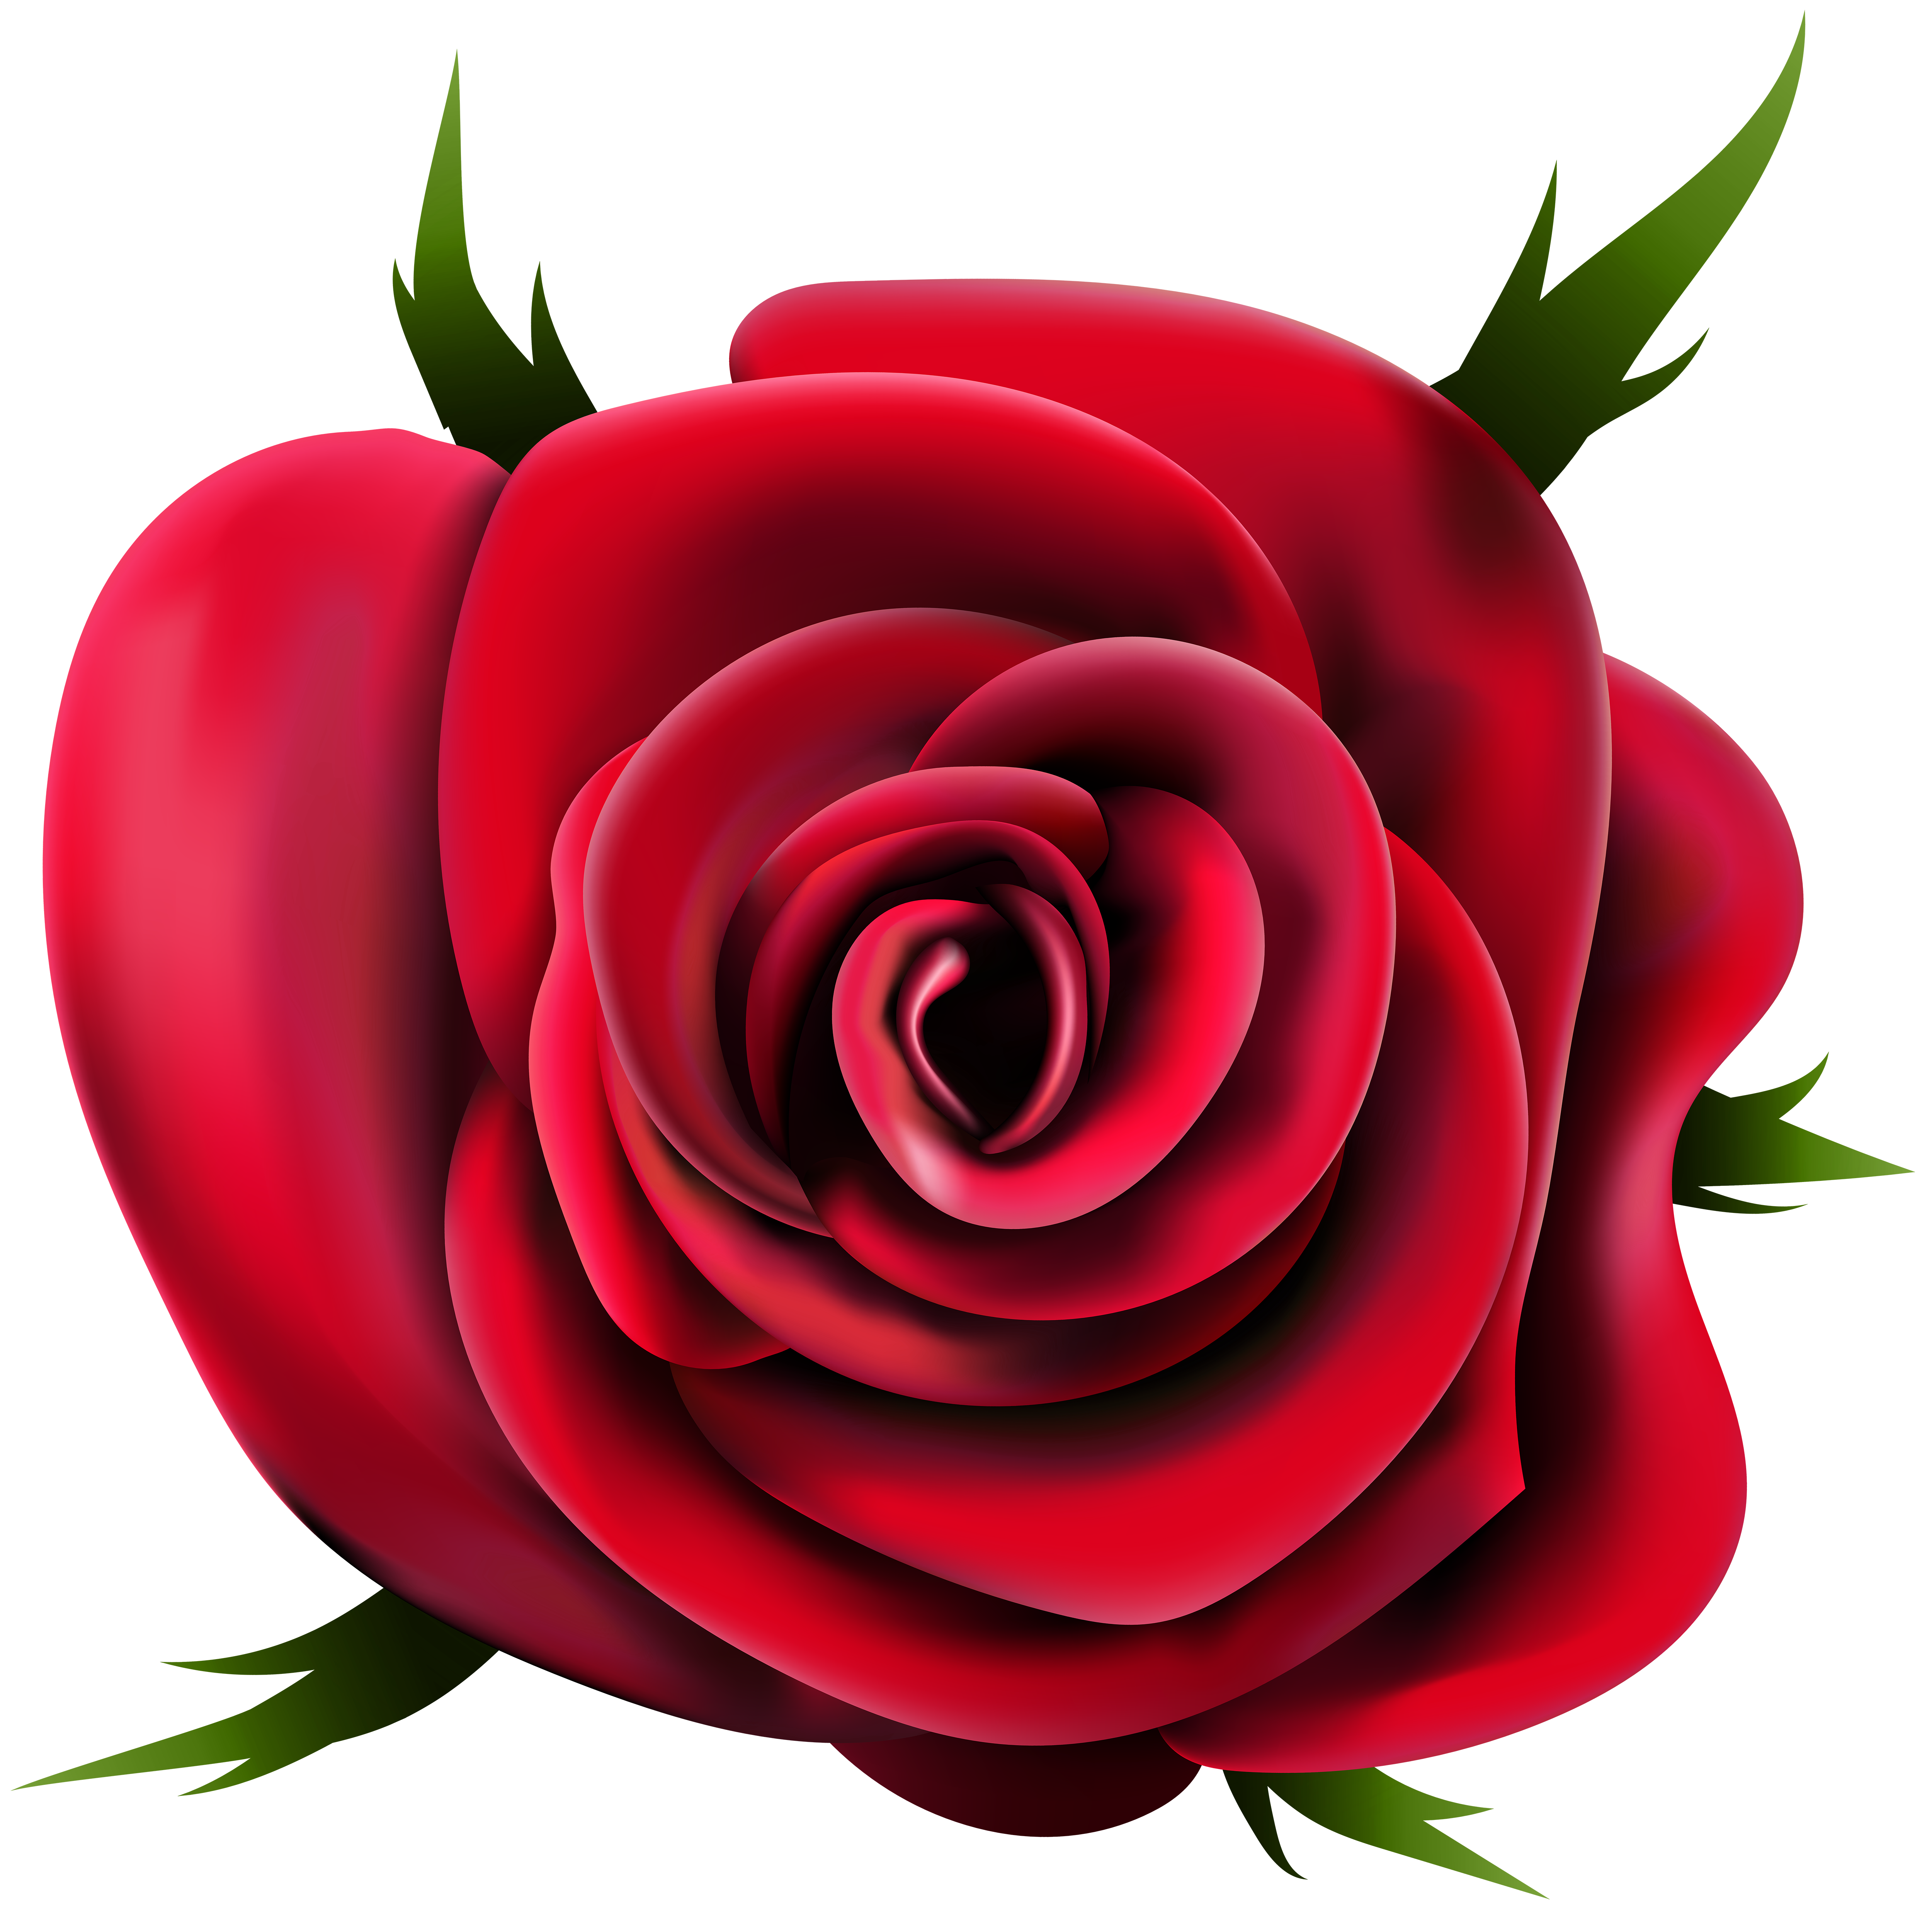 Hair flower png. Transparent rose clip art